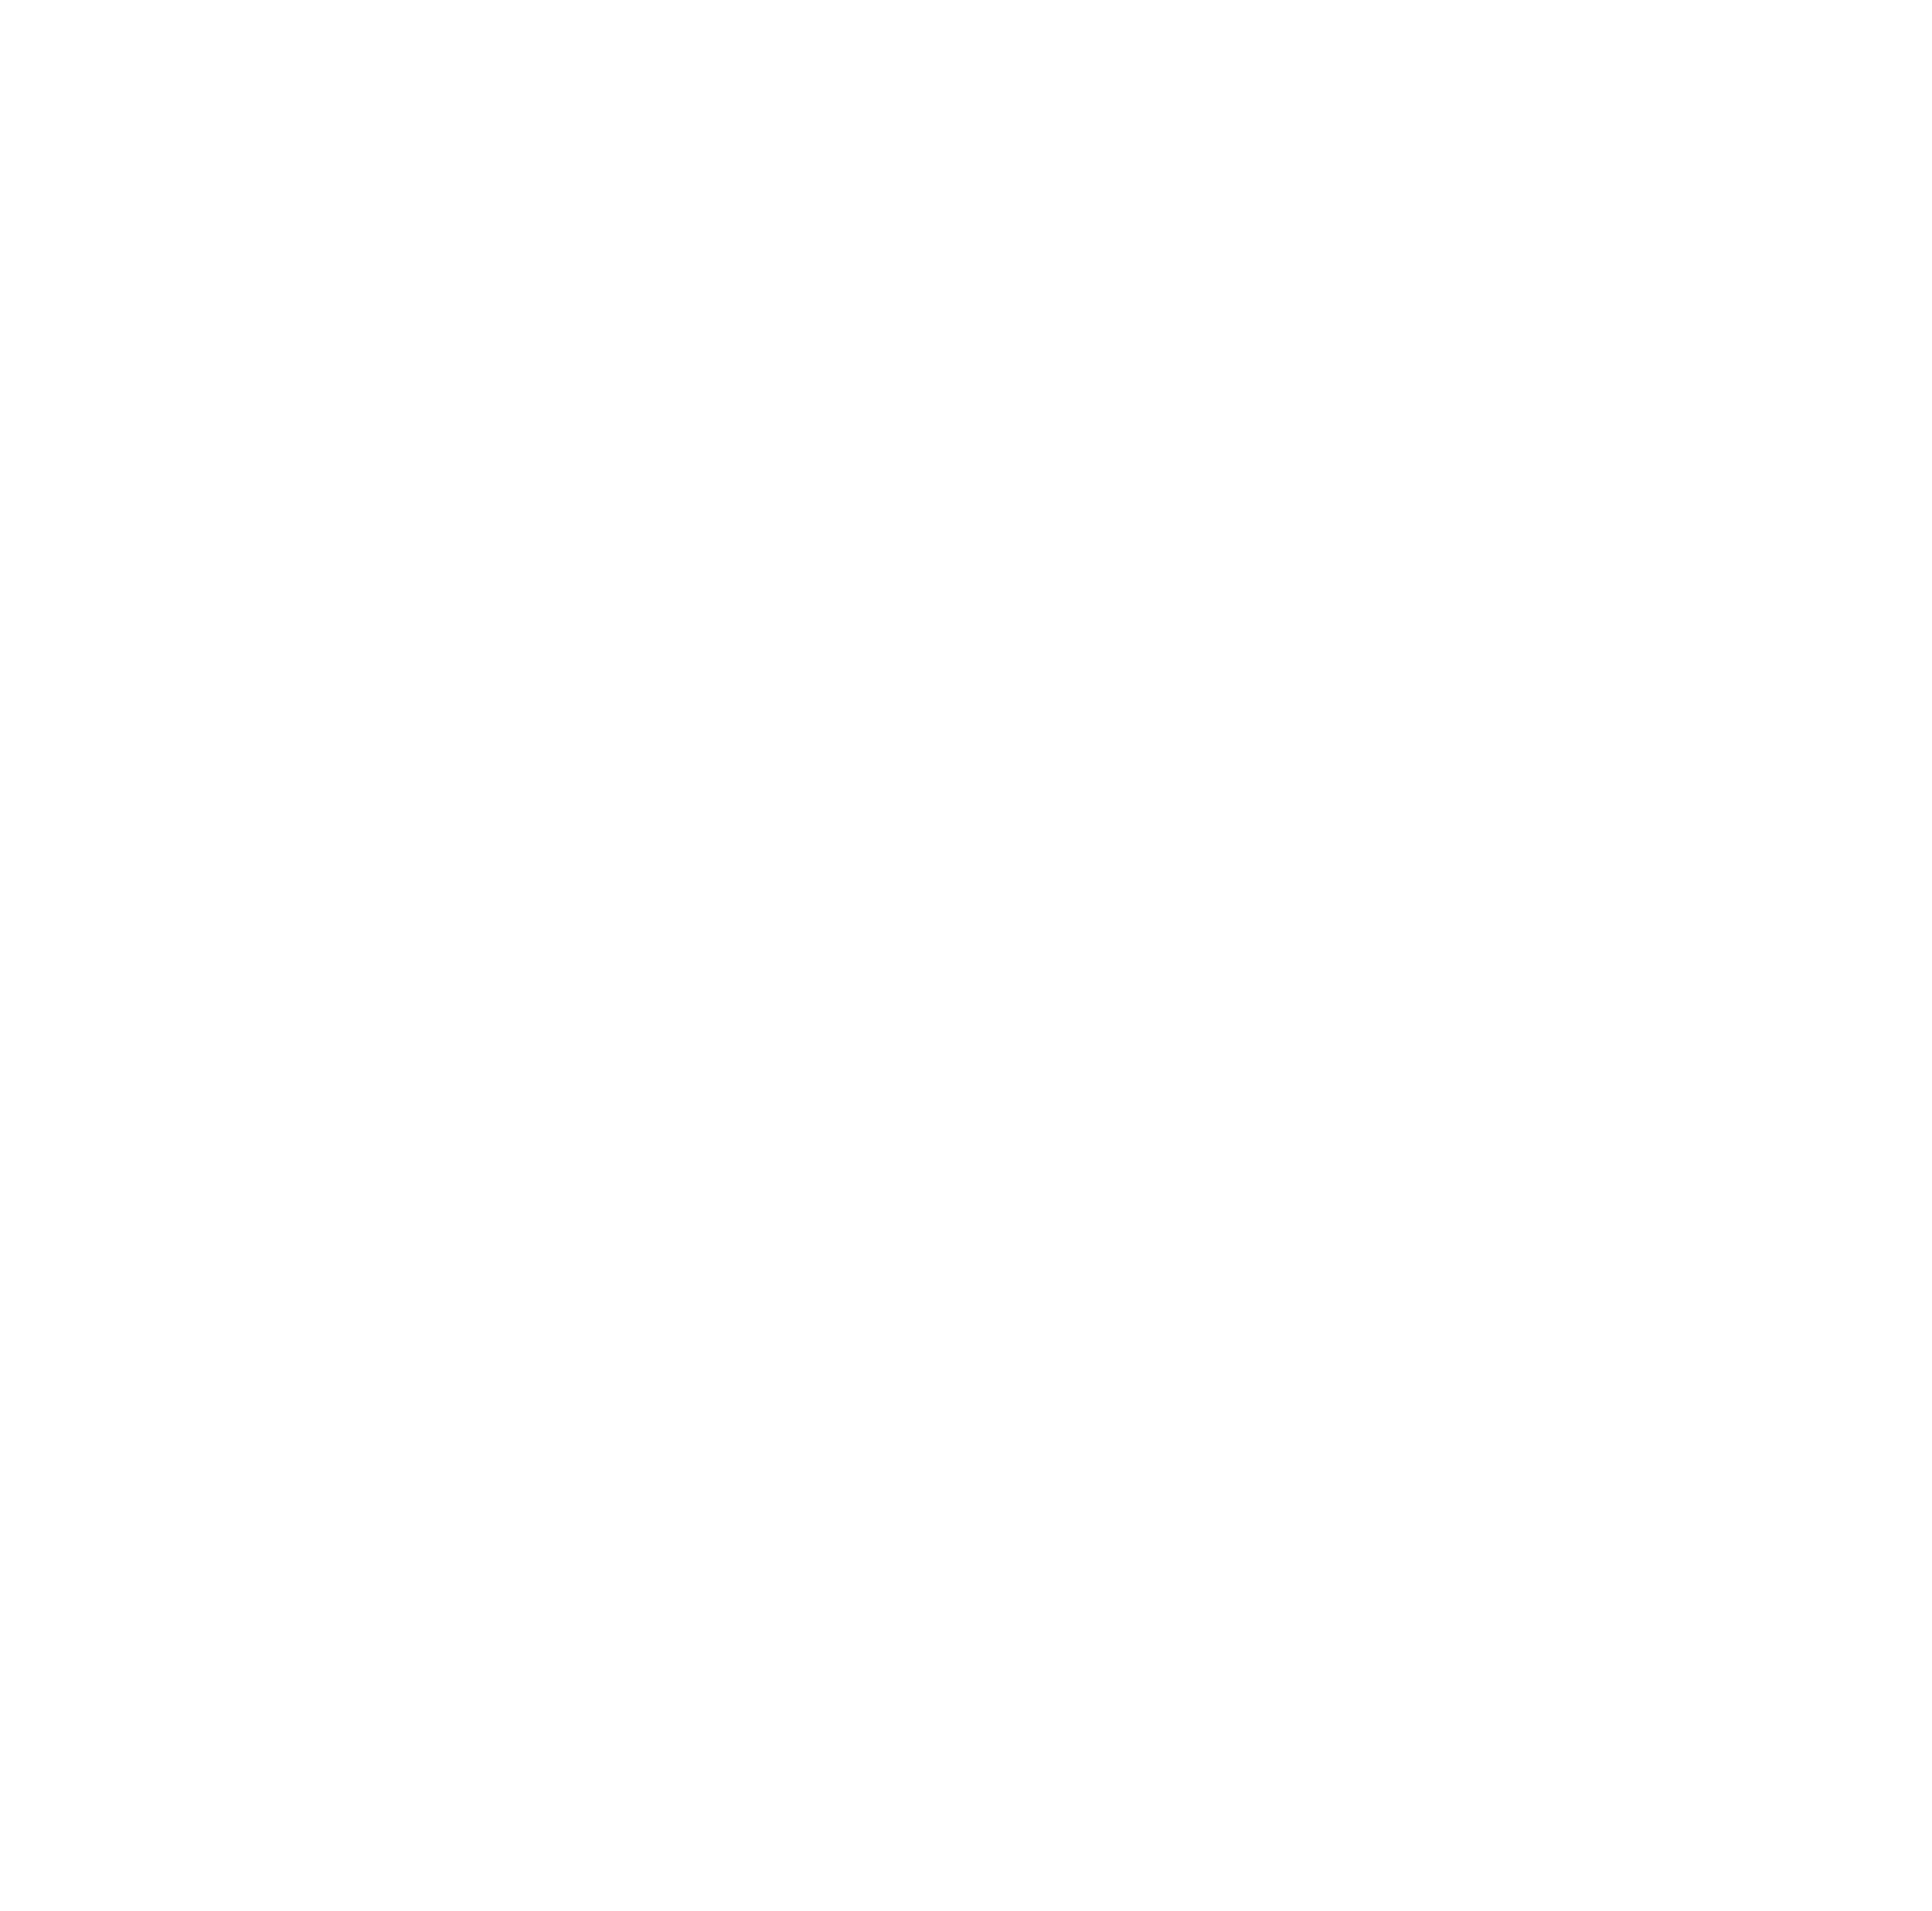 BAND OF OTHERS.png